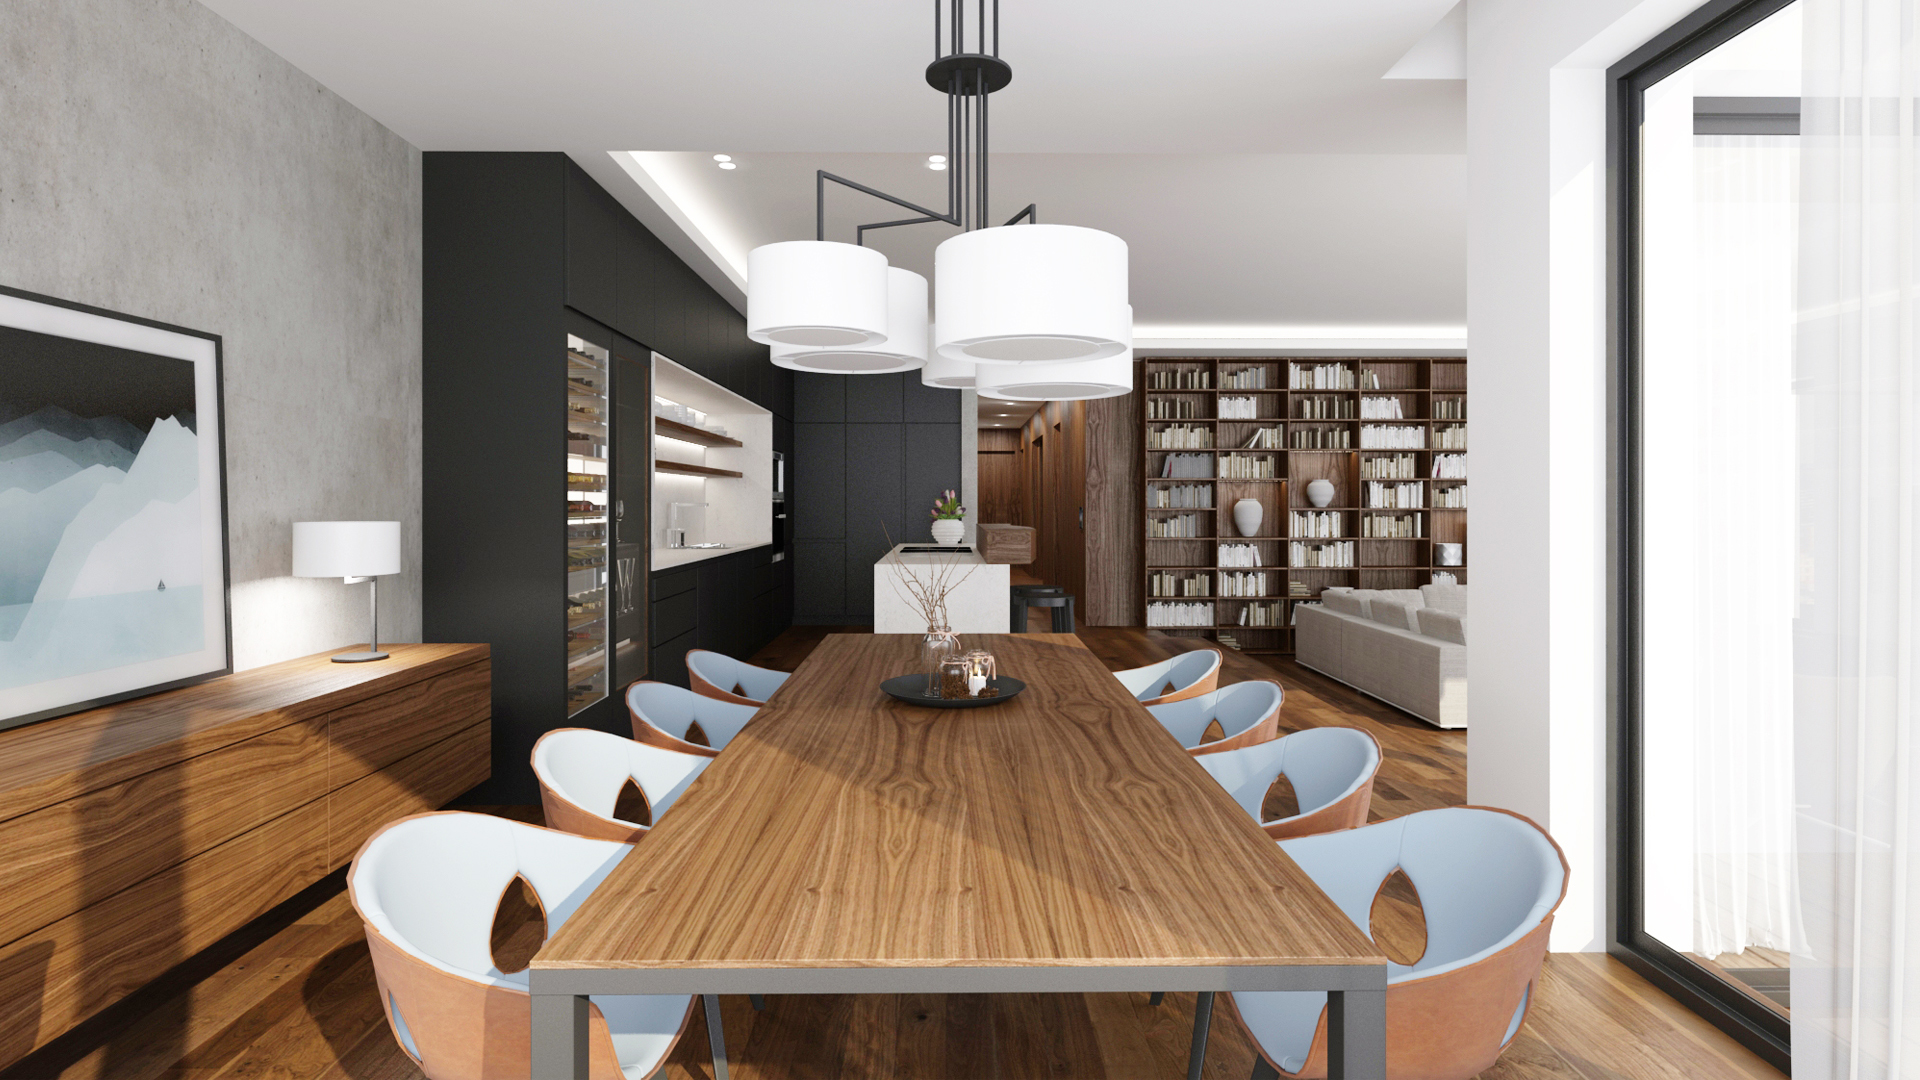 navrh jedalne, navrh kuchyne, navrh interieru kuchyne, navrh interieru, dizajn interieru, interierovy dizajner, interierovy dizajn, zeitraum light, noon light, dining room, kitchen design, interior design, poltrona chair, ginger chair, ginger armchair, interior designer, neolith carrara, noon table light, penthouse design, walnut penthouse interior